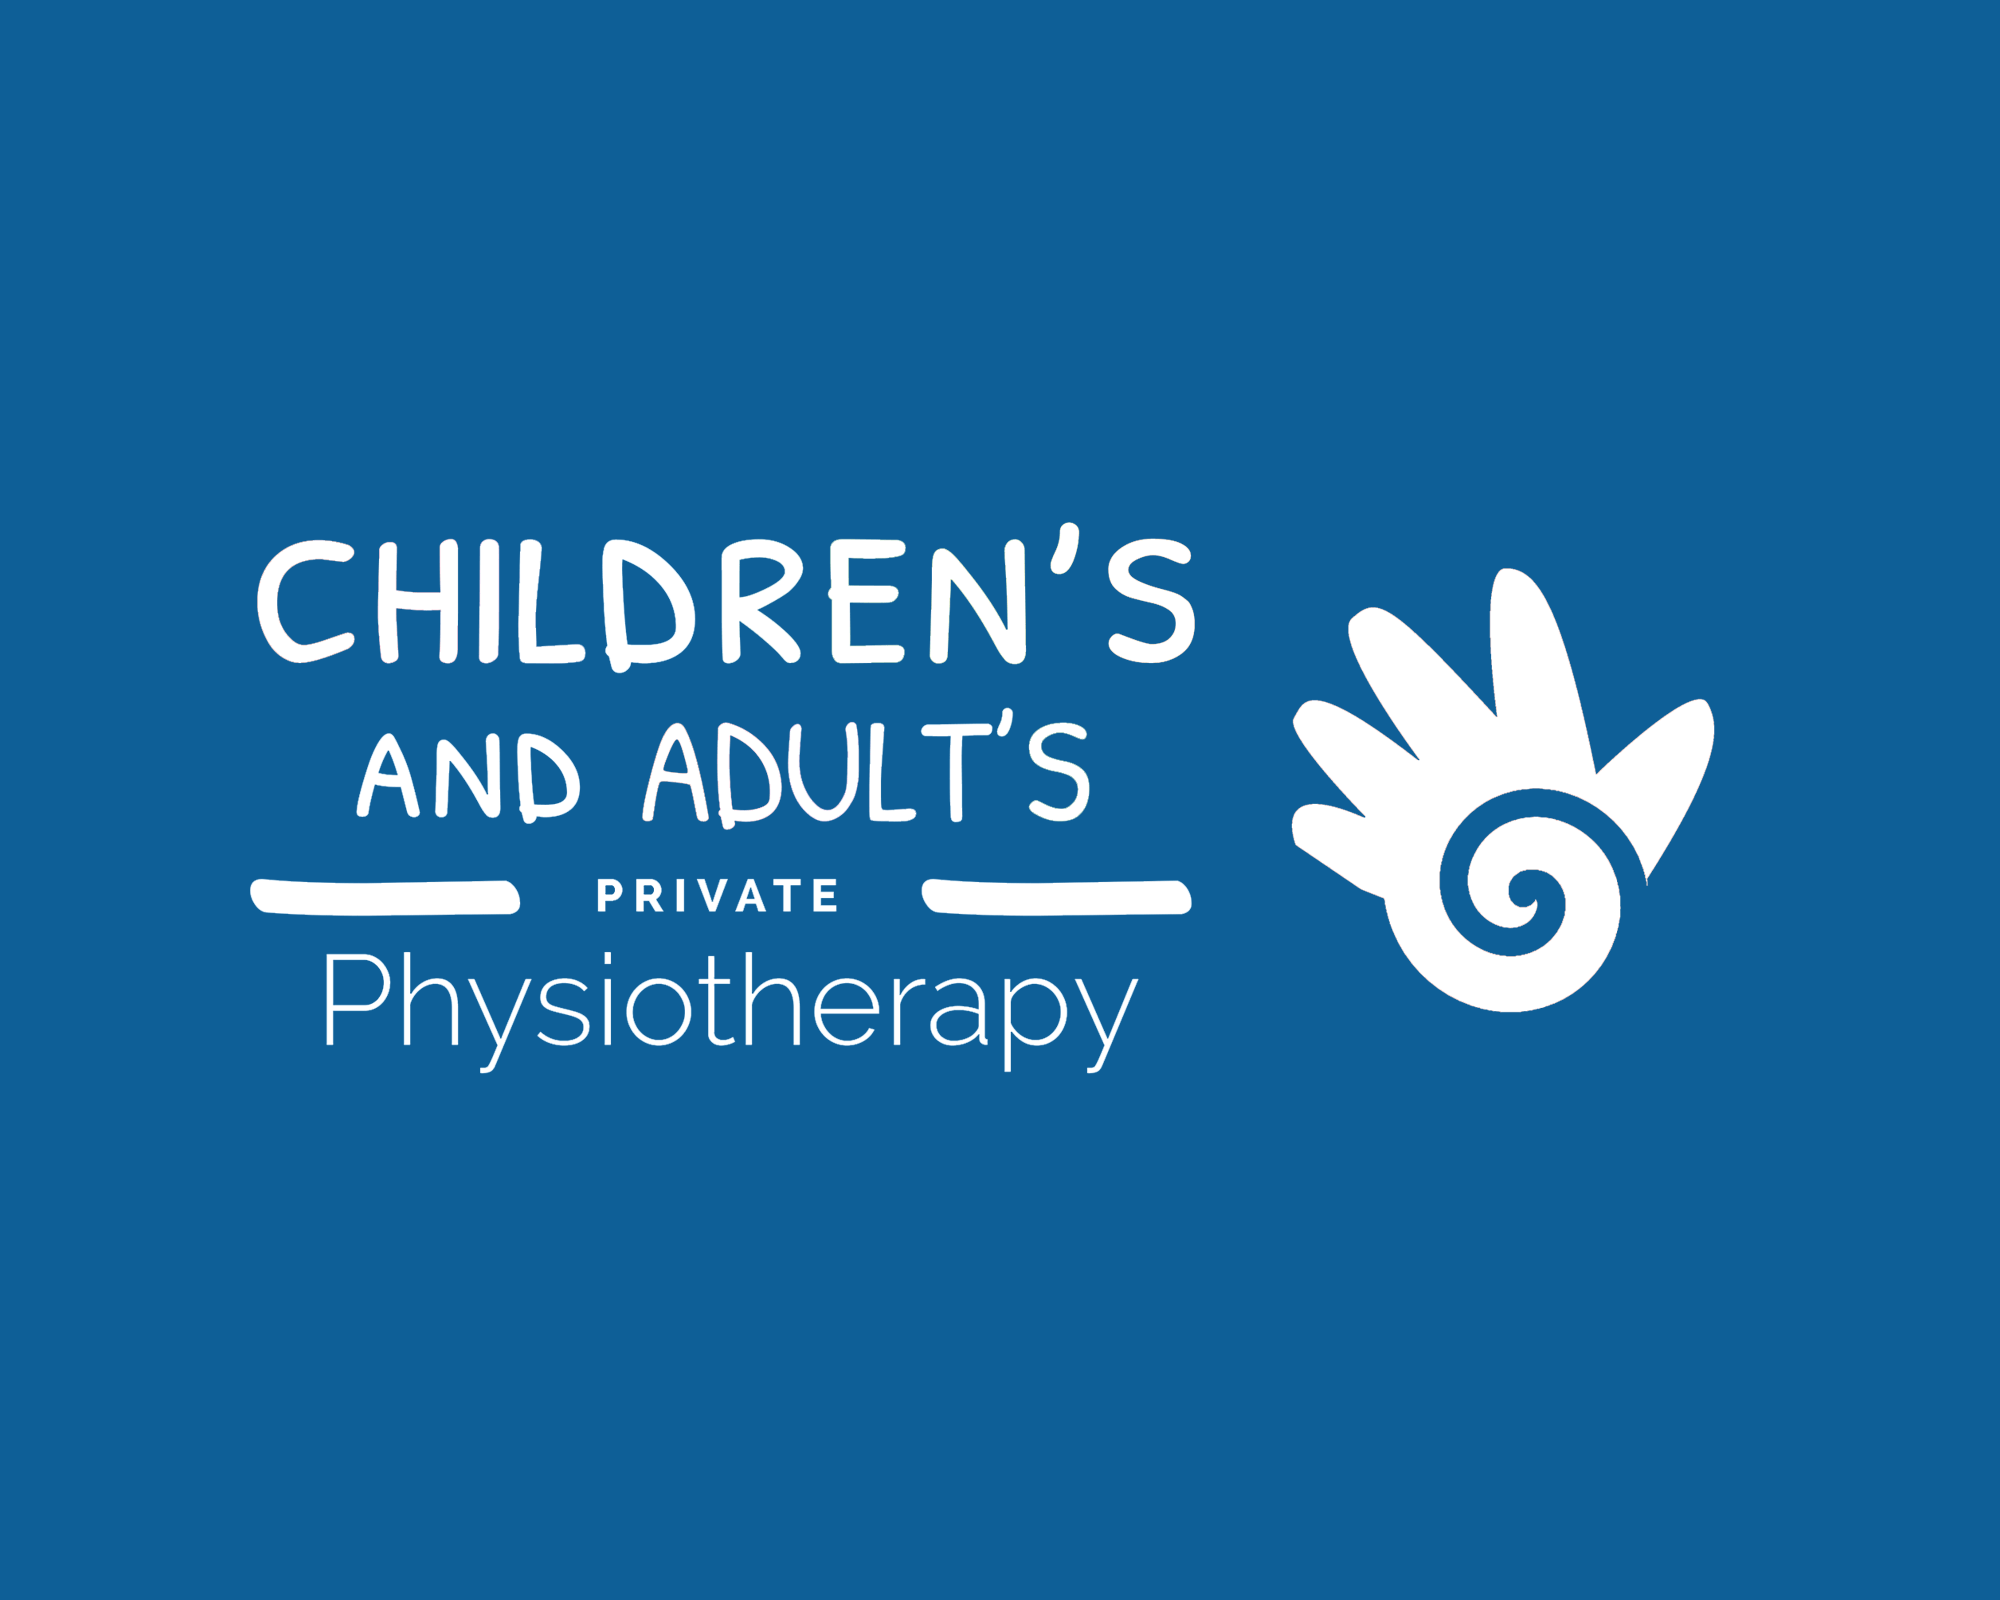 childrens and adults private physiotherapy Logo